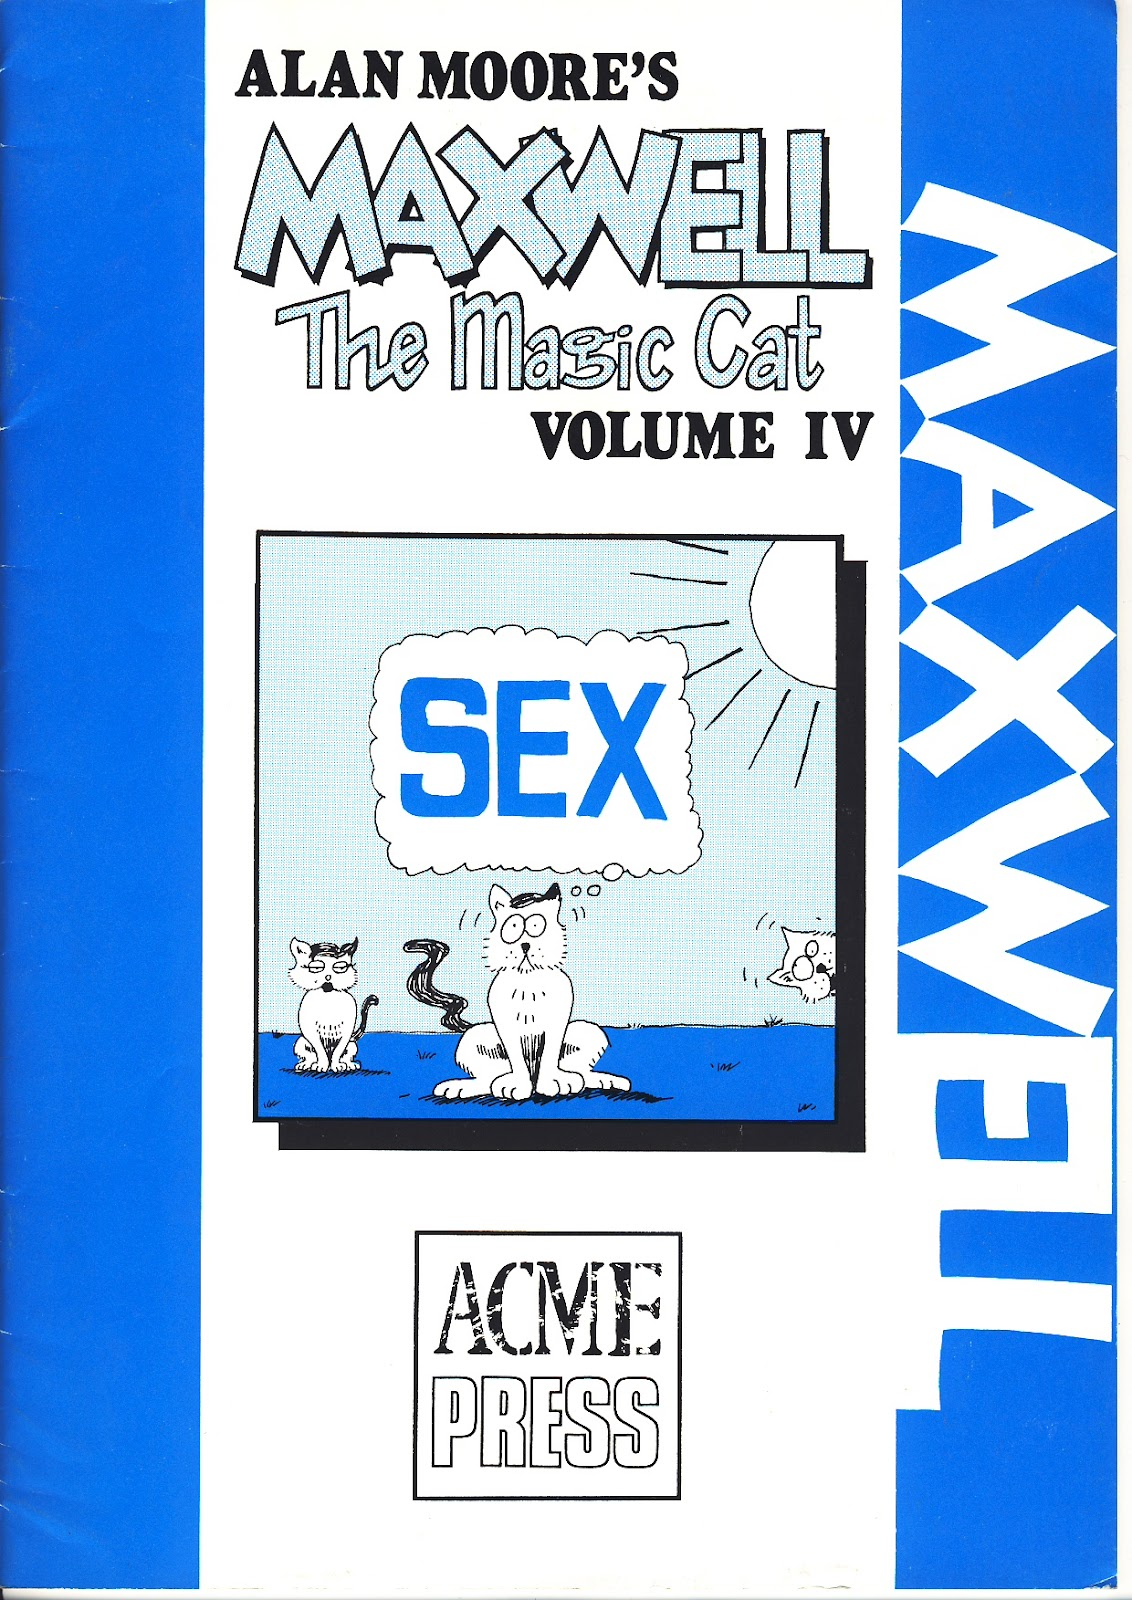 Read online Alan Moore's Maxwell the Magic Cat comic -  Issue #4 - 1